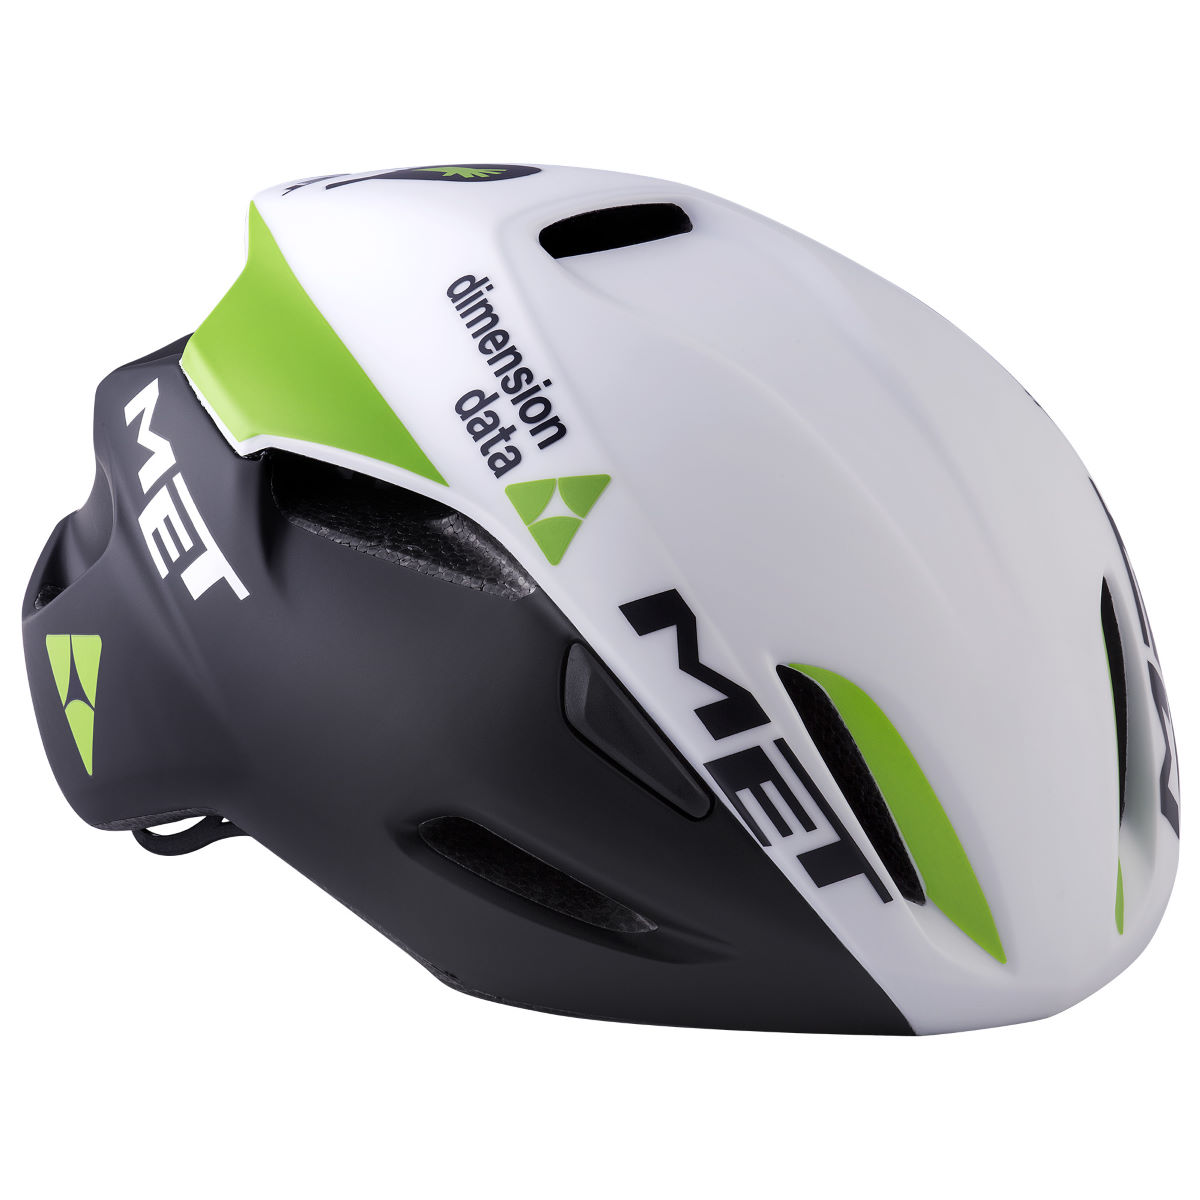 Casque de route MET Dimension Data Manta Aero - Medium